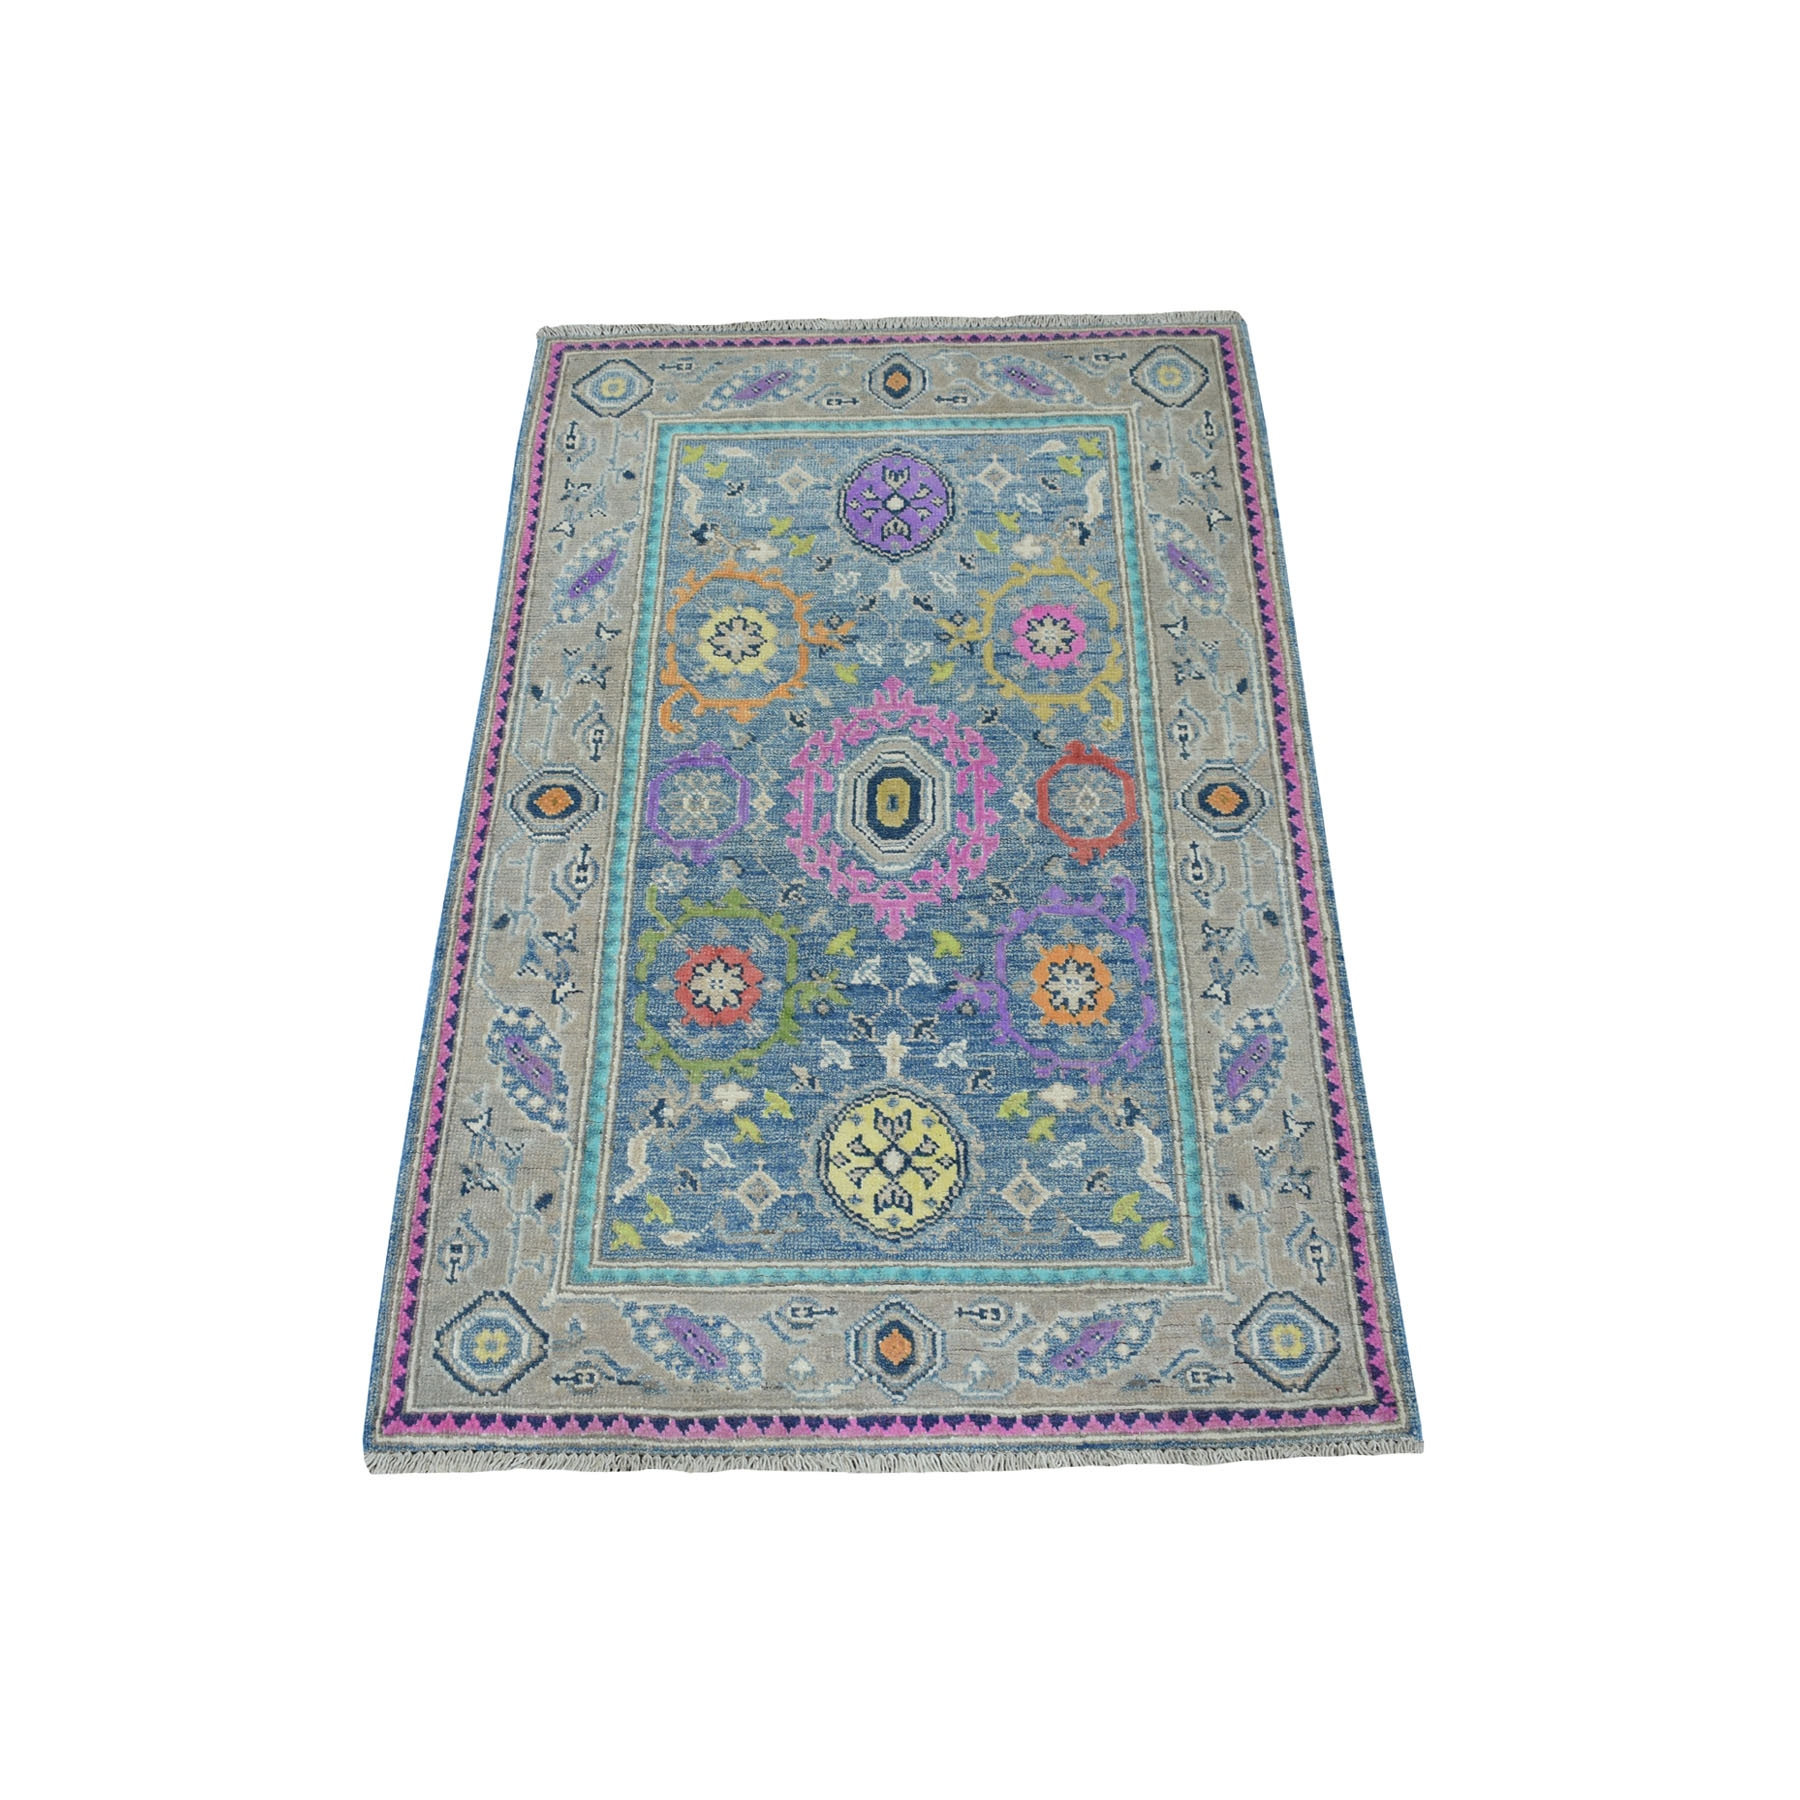 "2'9""X4' Colorful Blue Fusion Kazak Pure Wool Geometric Design Hand Knotted Oriental Rug moaec80d"